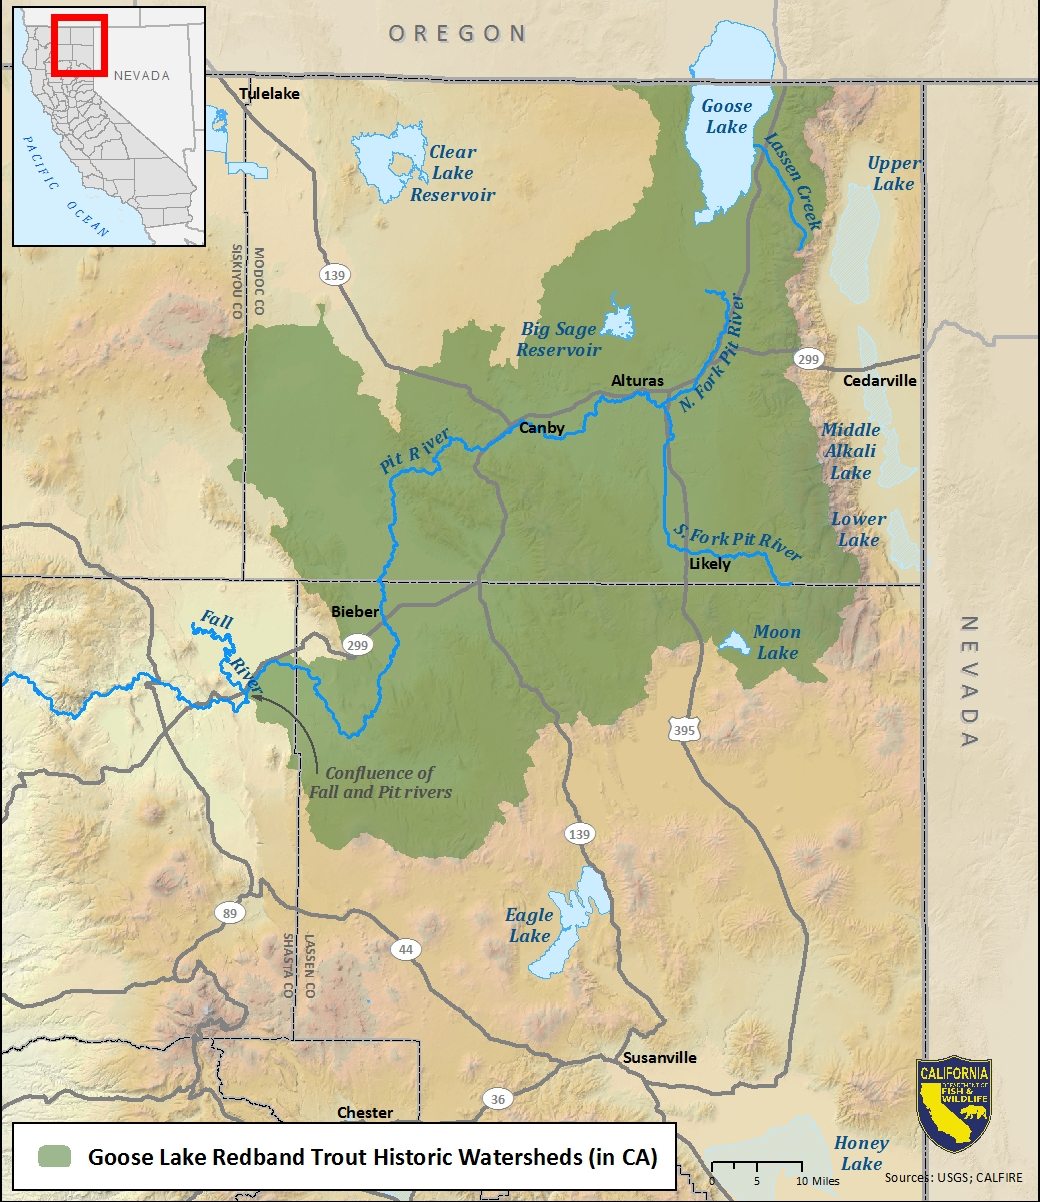 Map of Goose Lake redband trout historic watersheds - click to enlarge in new window